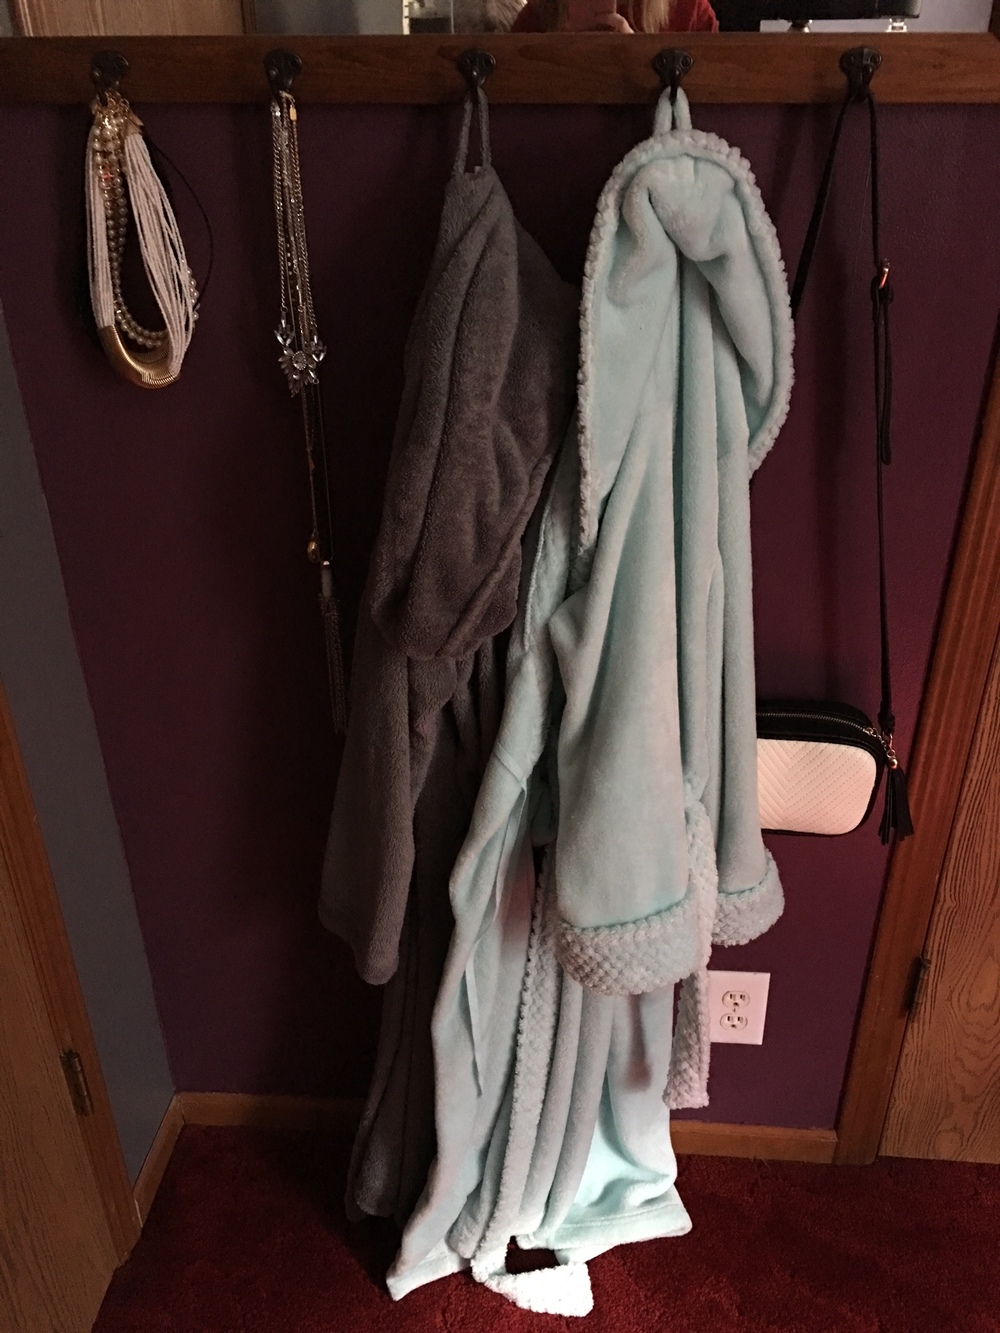 This is a picture of what's hanging on my newly-painted wall behind my bedroom door. I'm not sure what the proper name is for this mirror/hanger thing, but as you can see it's holding my necklaces, bathrobes, and my current every-day bag.